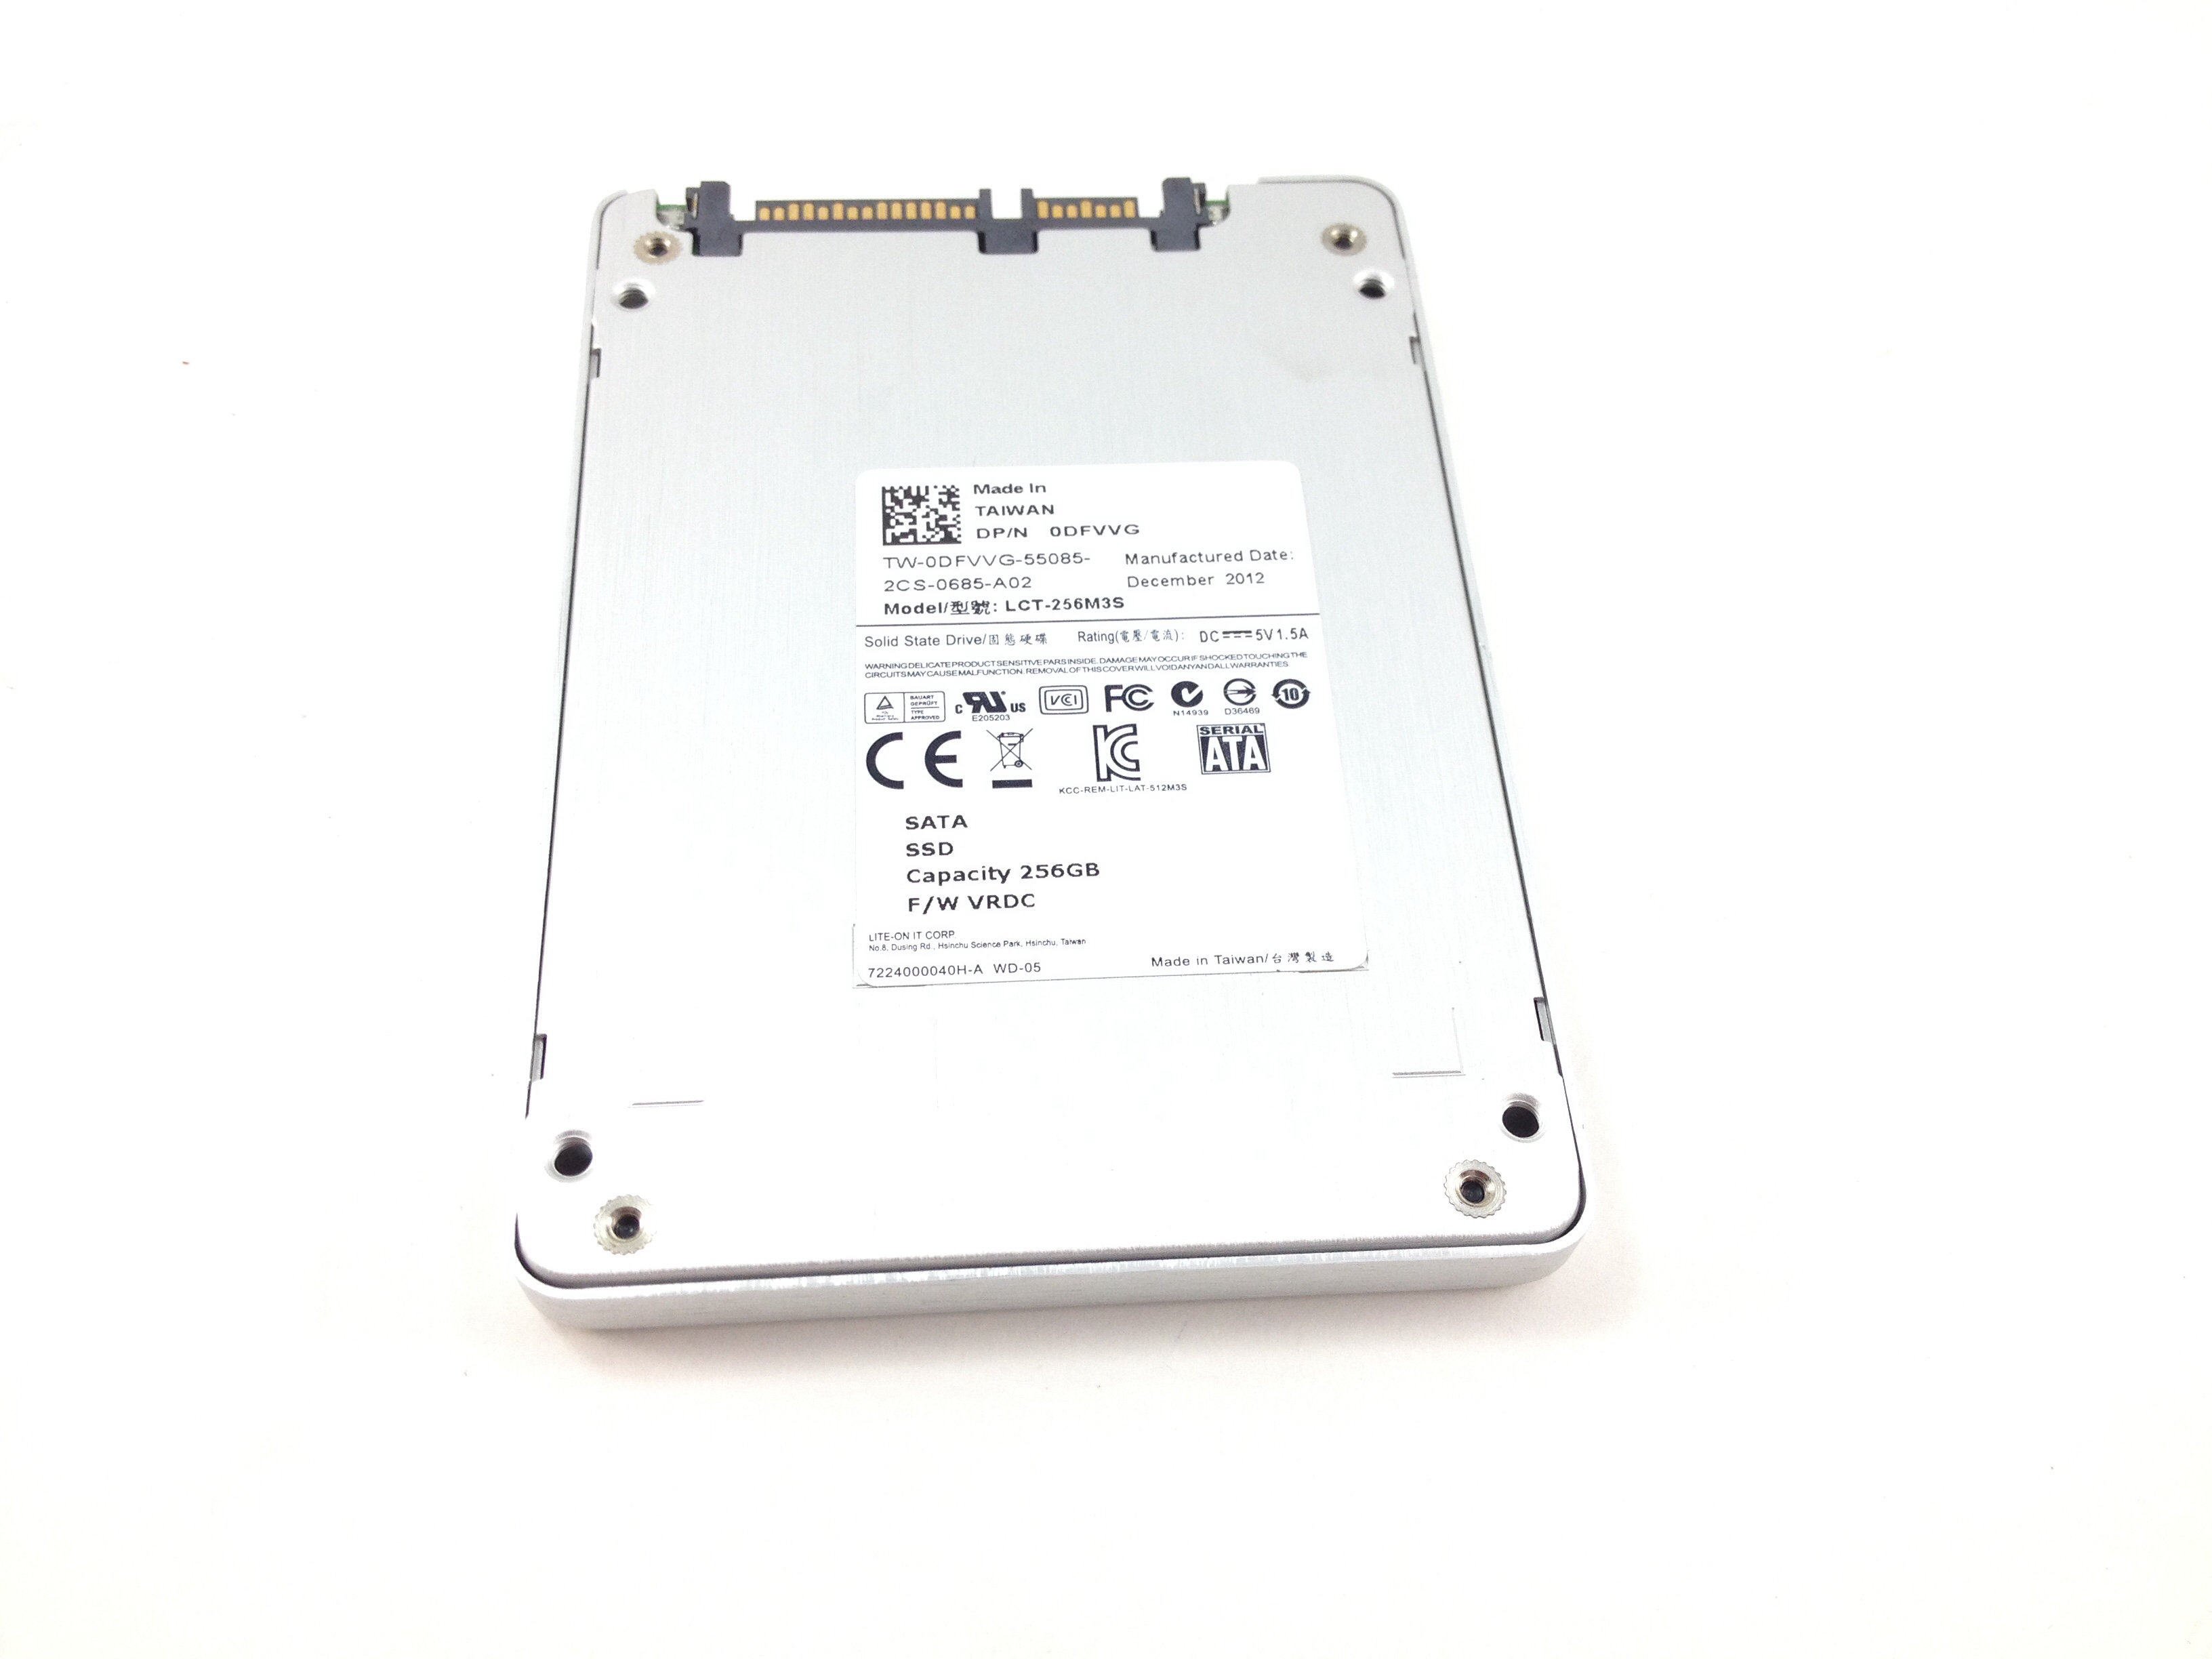 DFVVG DELL LITEON IT 256GB 6GBPS SATA 2.5'' SOLID STATE DRIVE (DFVVG)